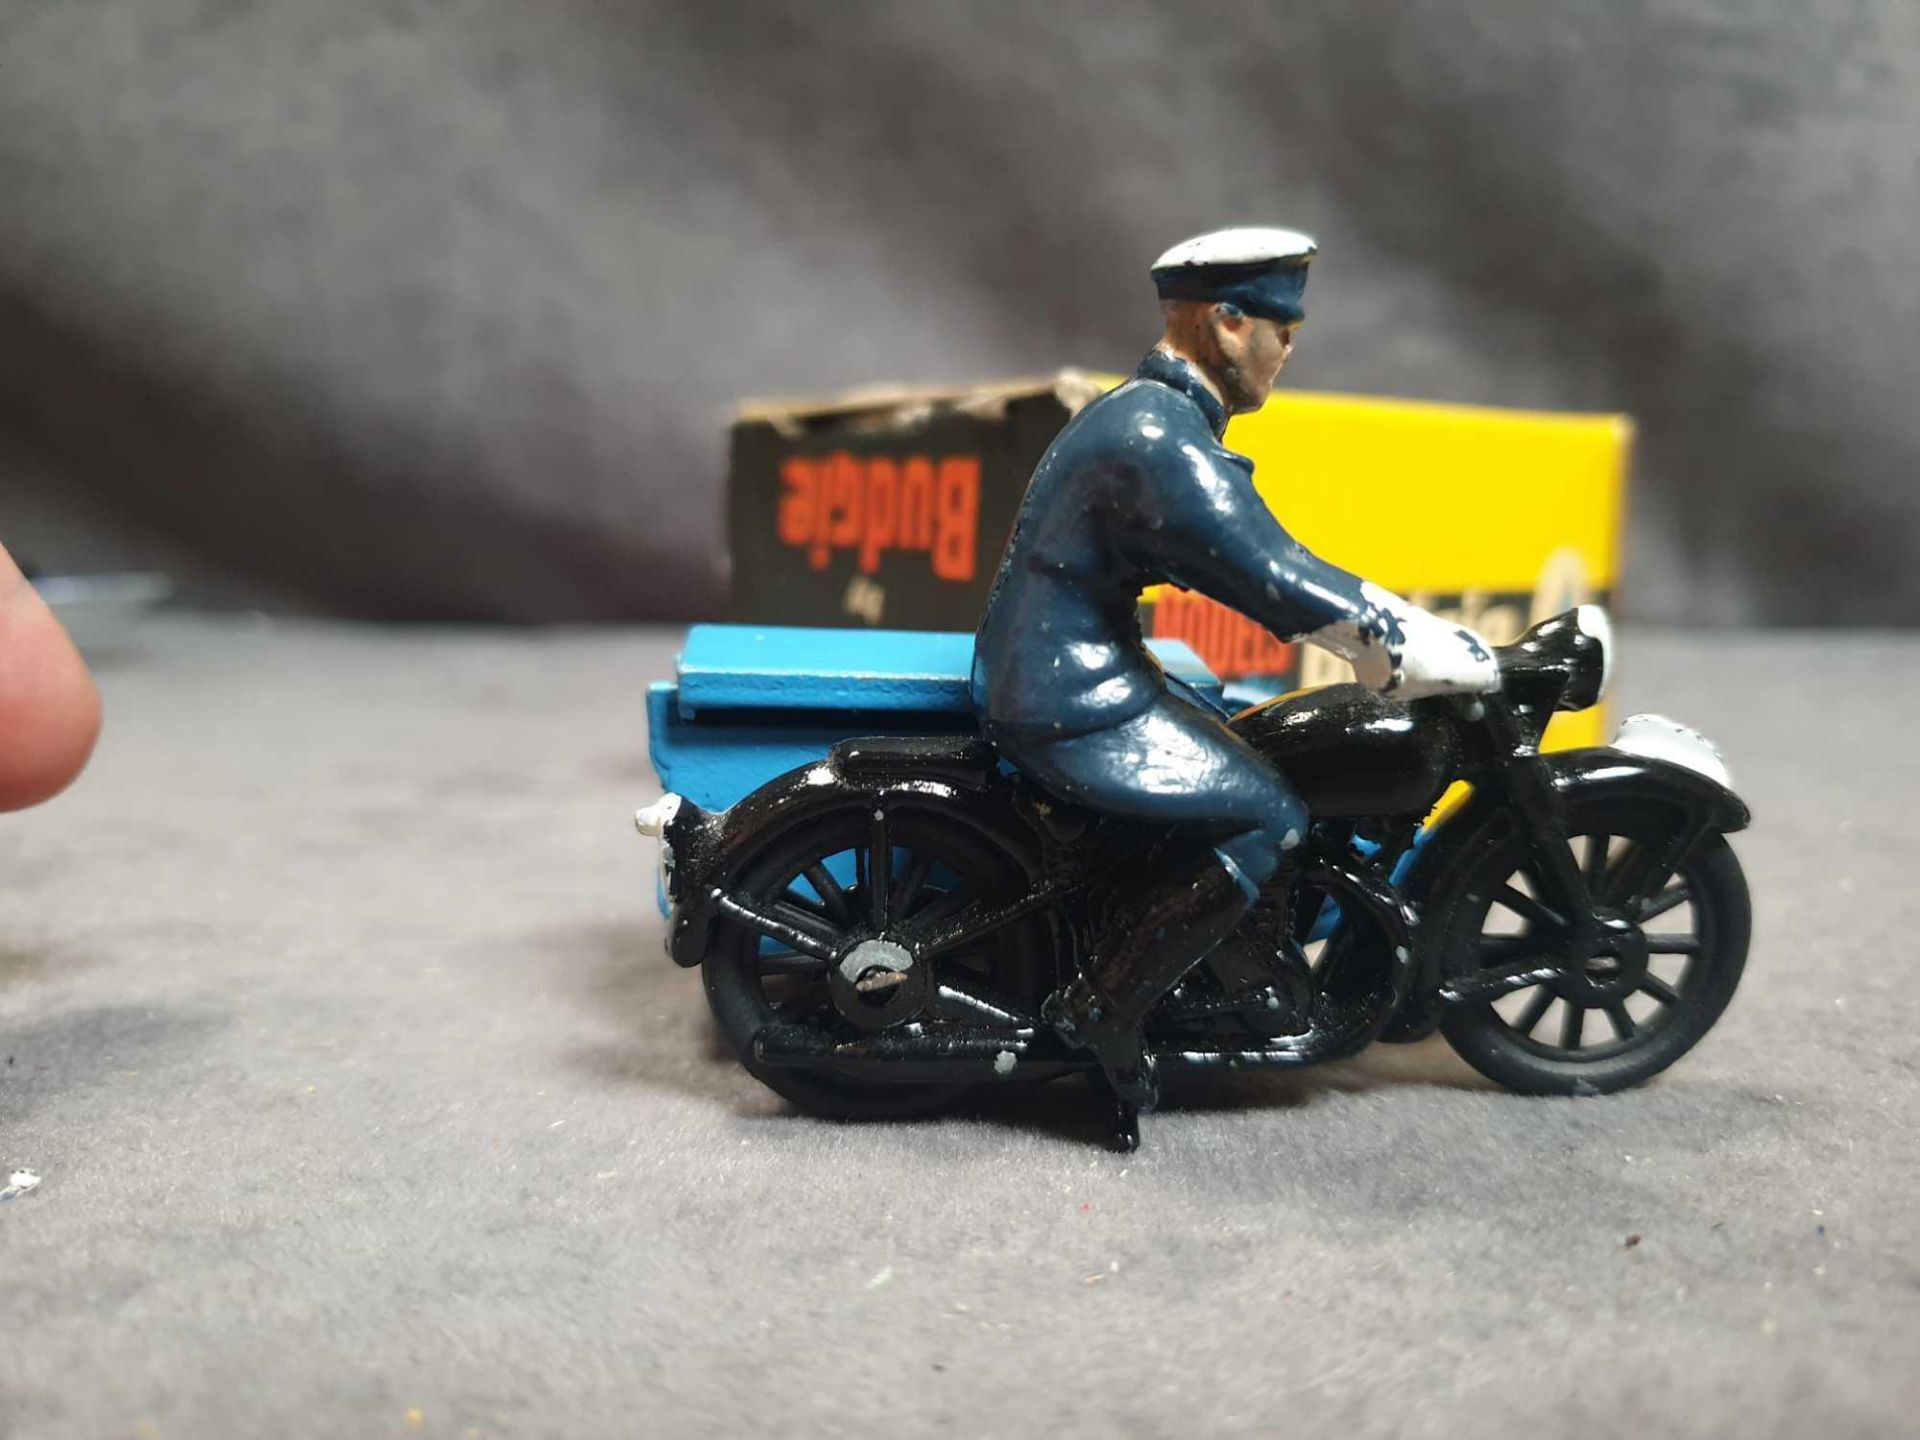 Virtually Mint Budgie Toys England #454 RAC Motorcycle Patrol Diecast;In Excellent Firm Box (Tiny - Image 3 of 5